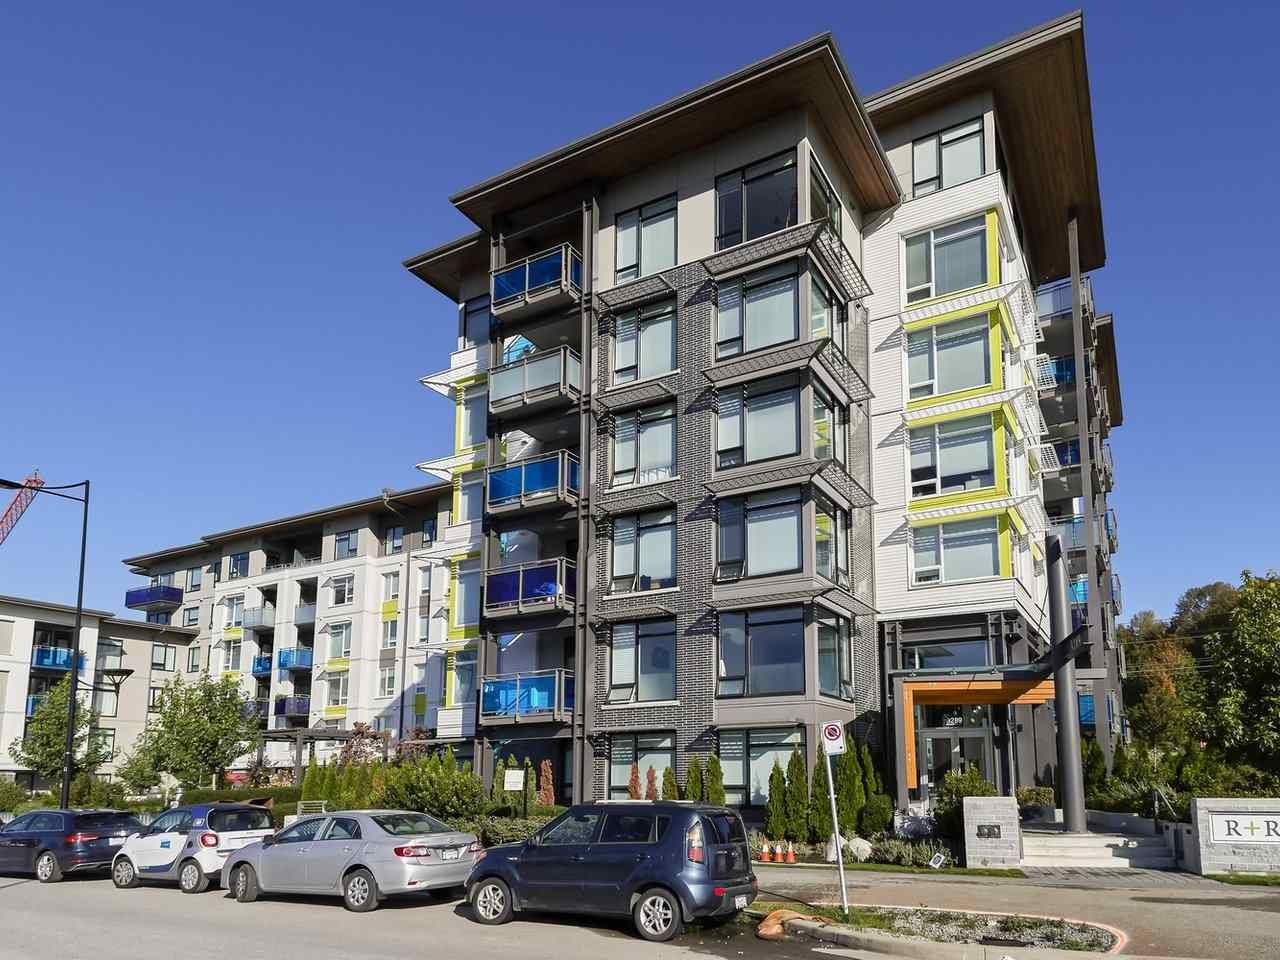 Main Photo: 216 3289 RIVERWALK AVENUE in Vancouver: South Marine Condo for sale (Vancouver East)  : MLS®# R2411434